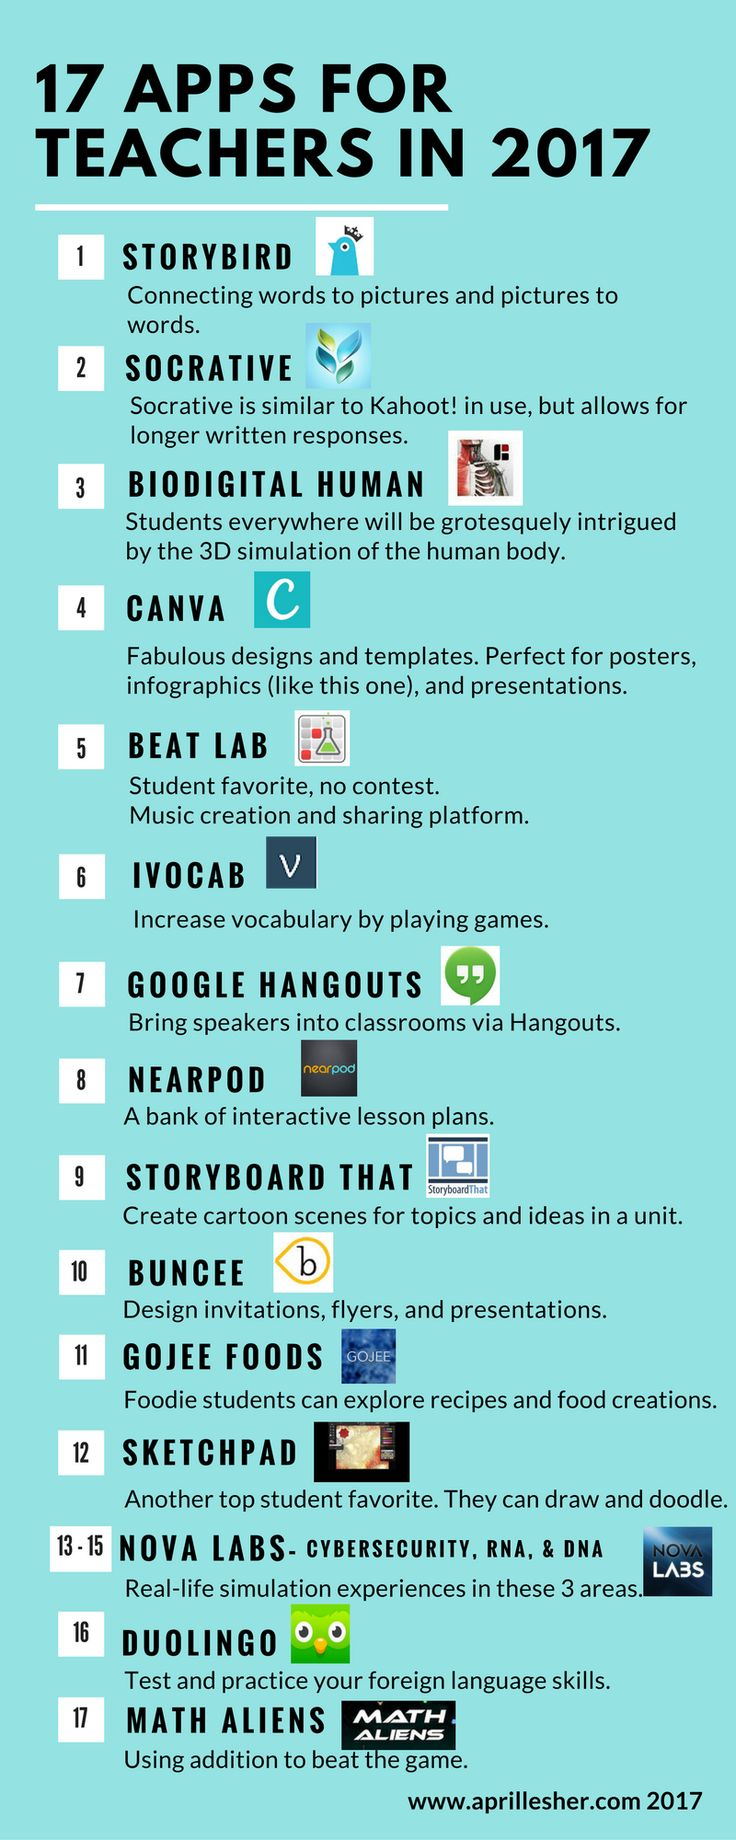 4327 best educational apps images on pinterest learning studying 17 apps for teachers in 2017 aprillesher urtaz Image collections